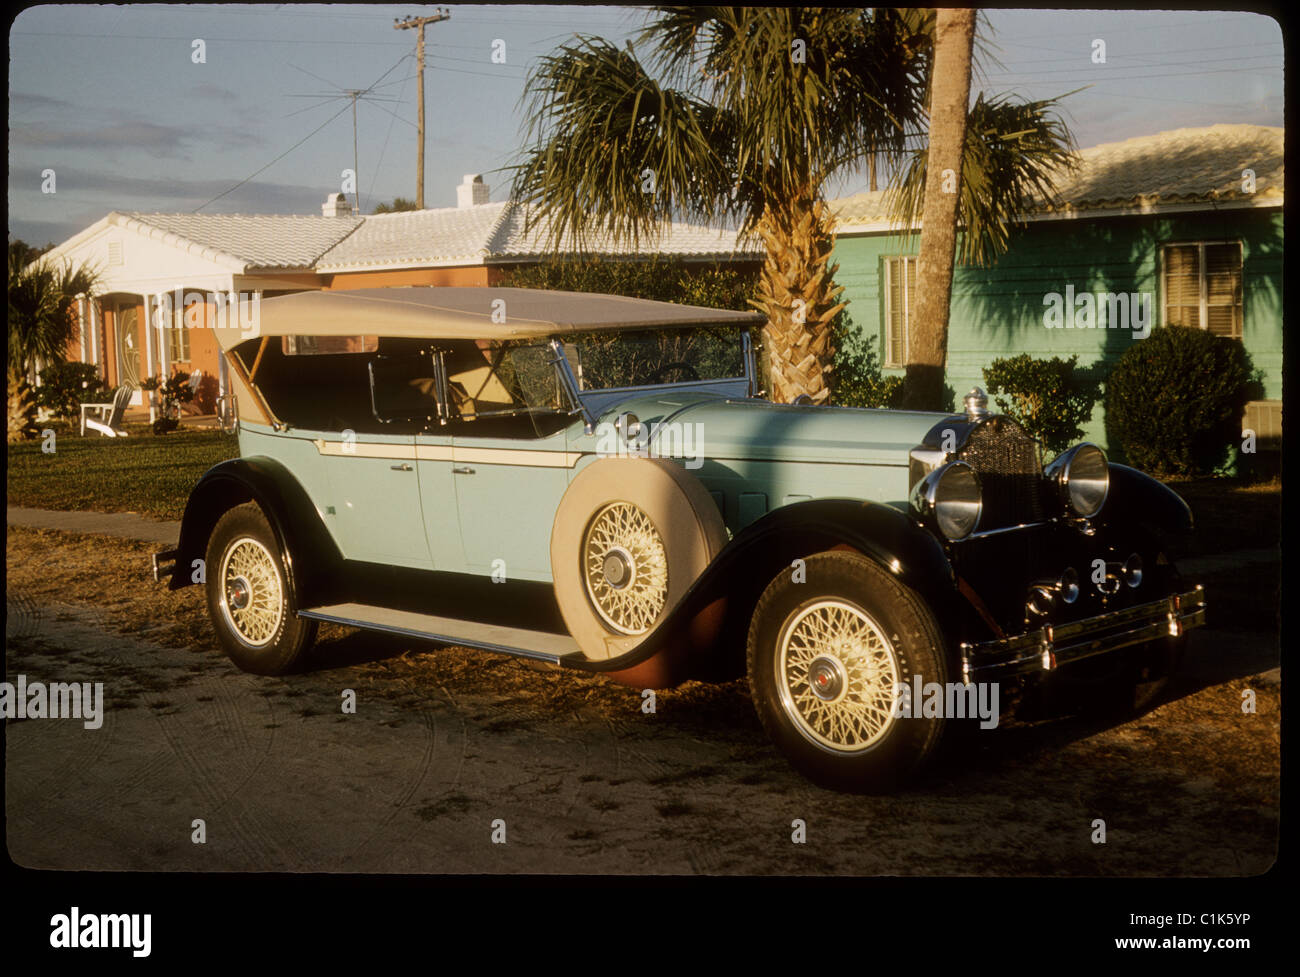 Antique parked car in Florida - Stock Image